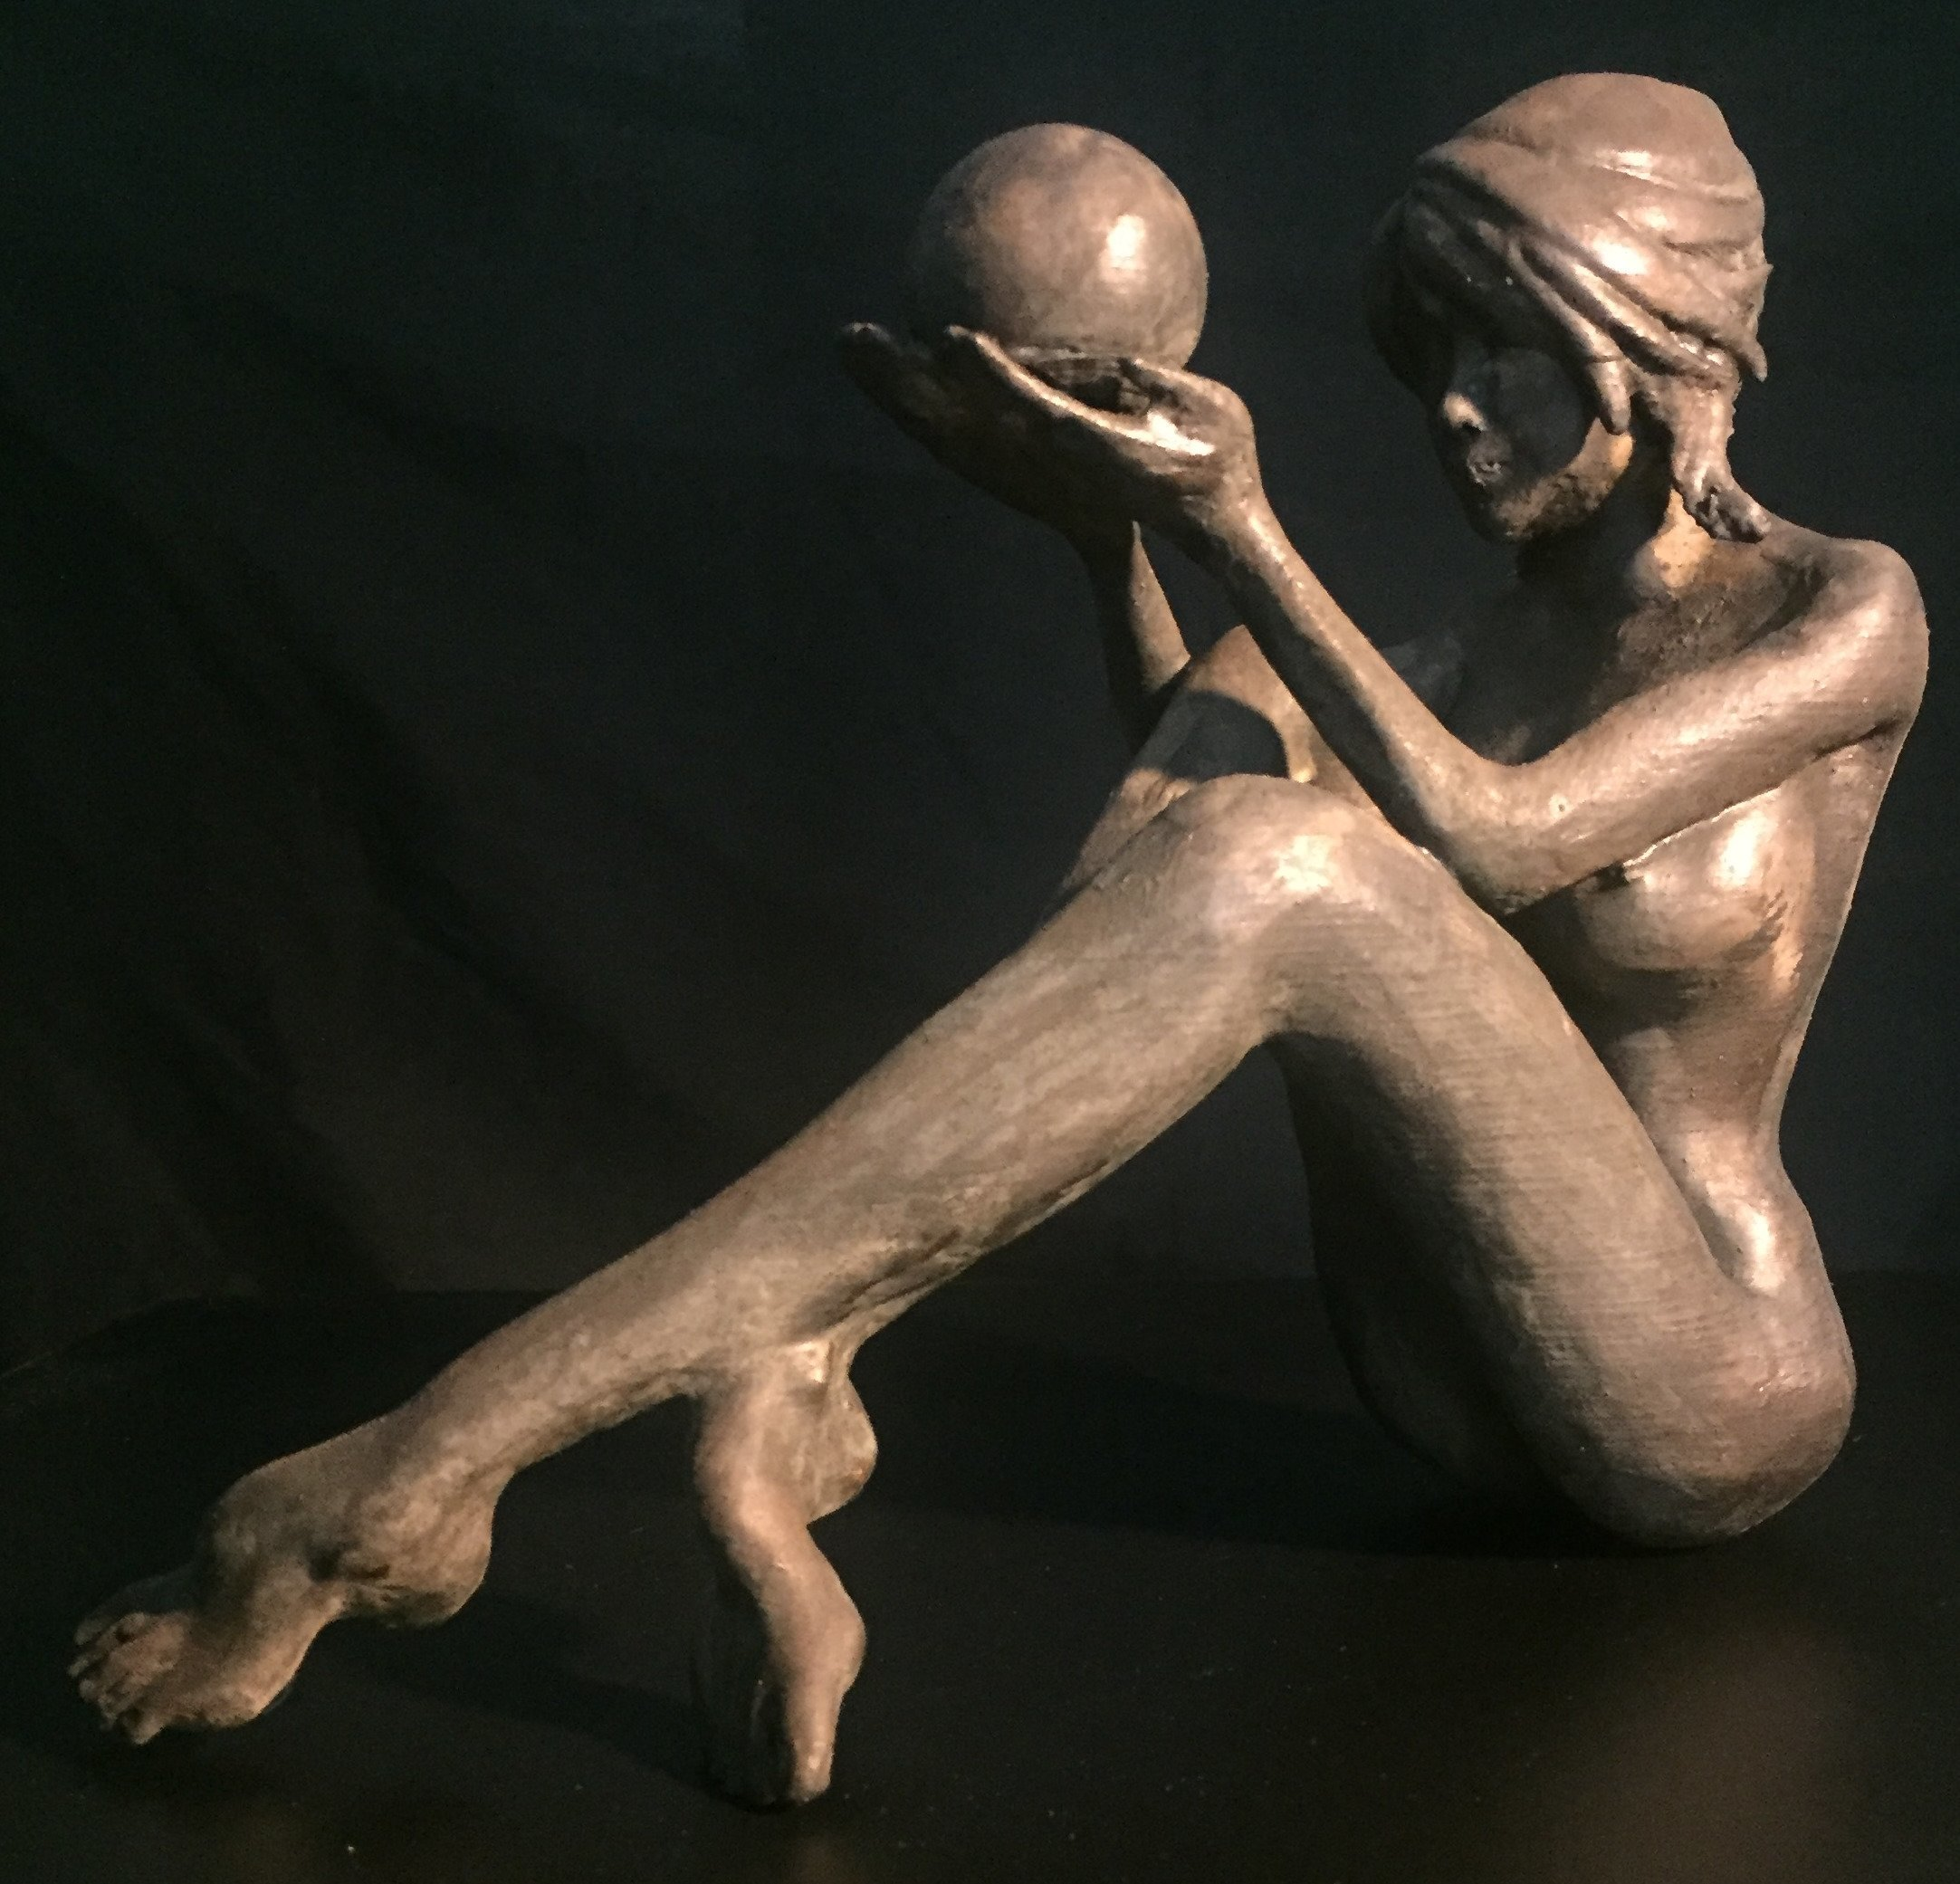 James Johnson: 'INTUITION 2nd edition', 2019 Bronze Sculpture, Nudes. Understanding the present and knowing the future happens everyday.  She was created using a cold cast method where bronze powder is incorporated into another media.  The patina is created using liver of sulfur.  Limited edition of 150 with an artistaEURtms mark, date, and number.  Each piece may appear slightly ...